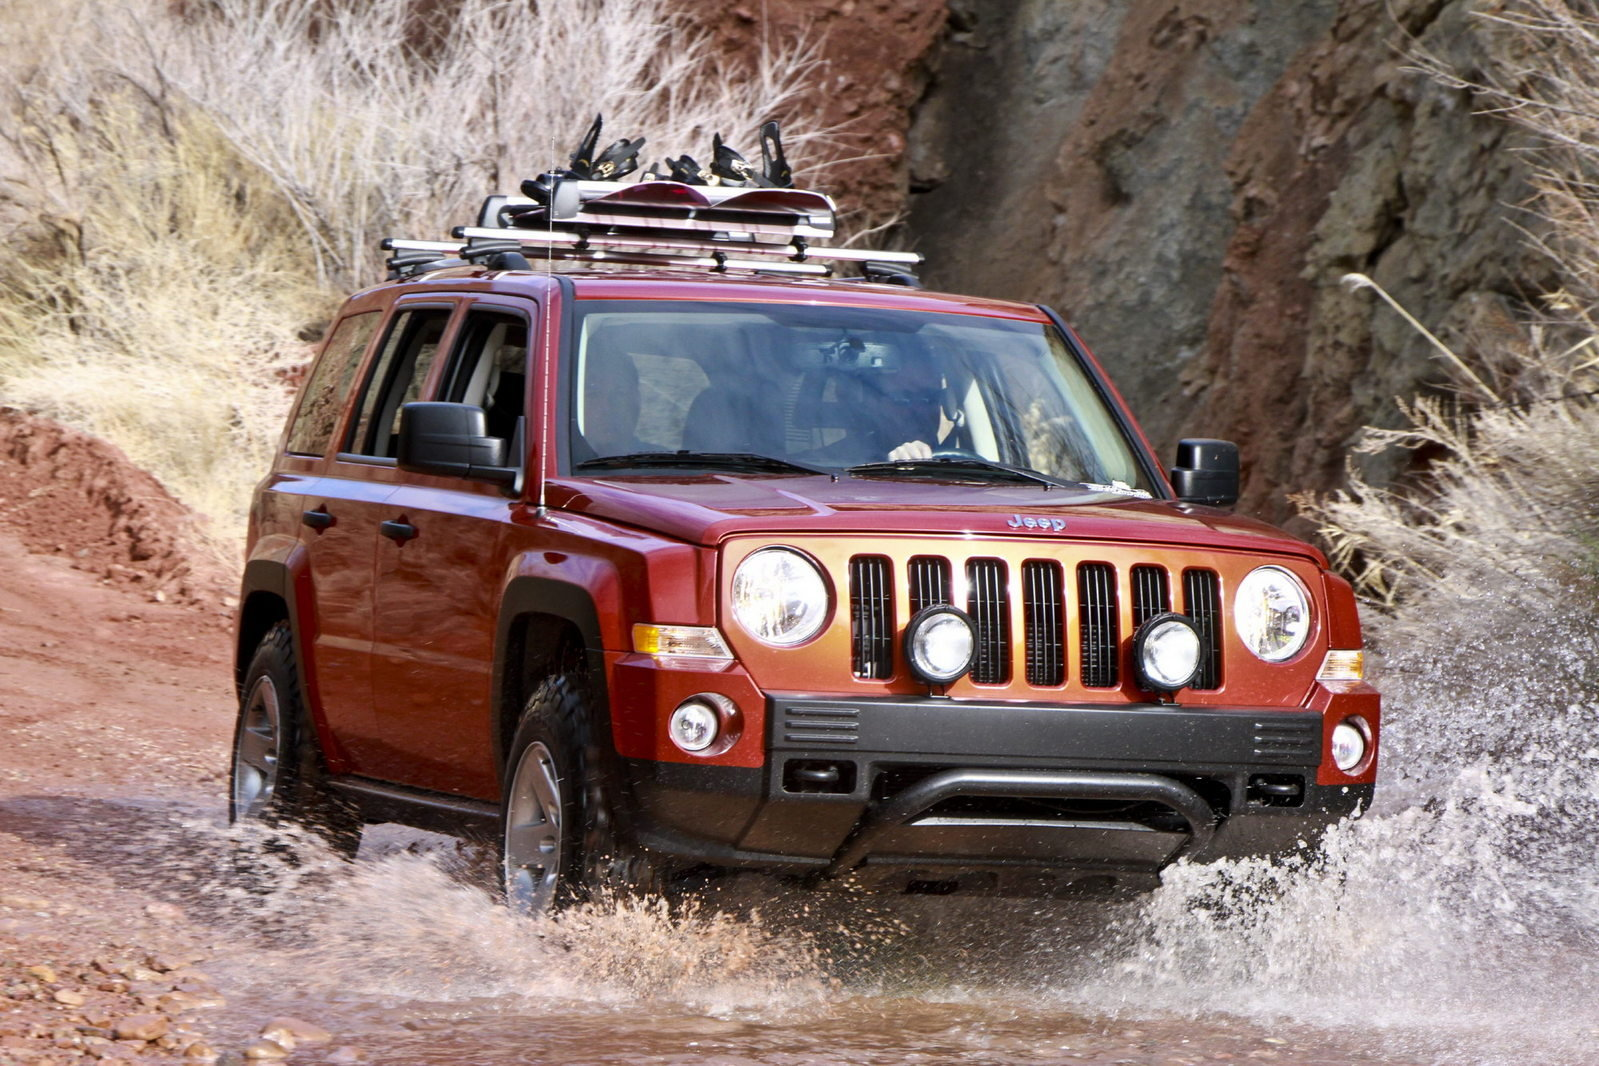 2011 jeep patriot extreme review - top speed